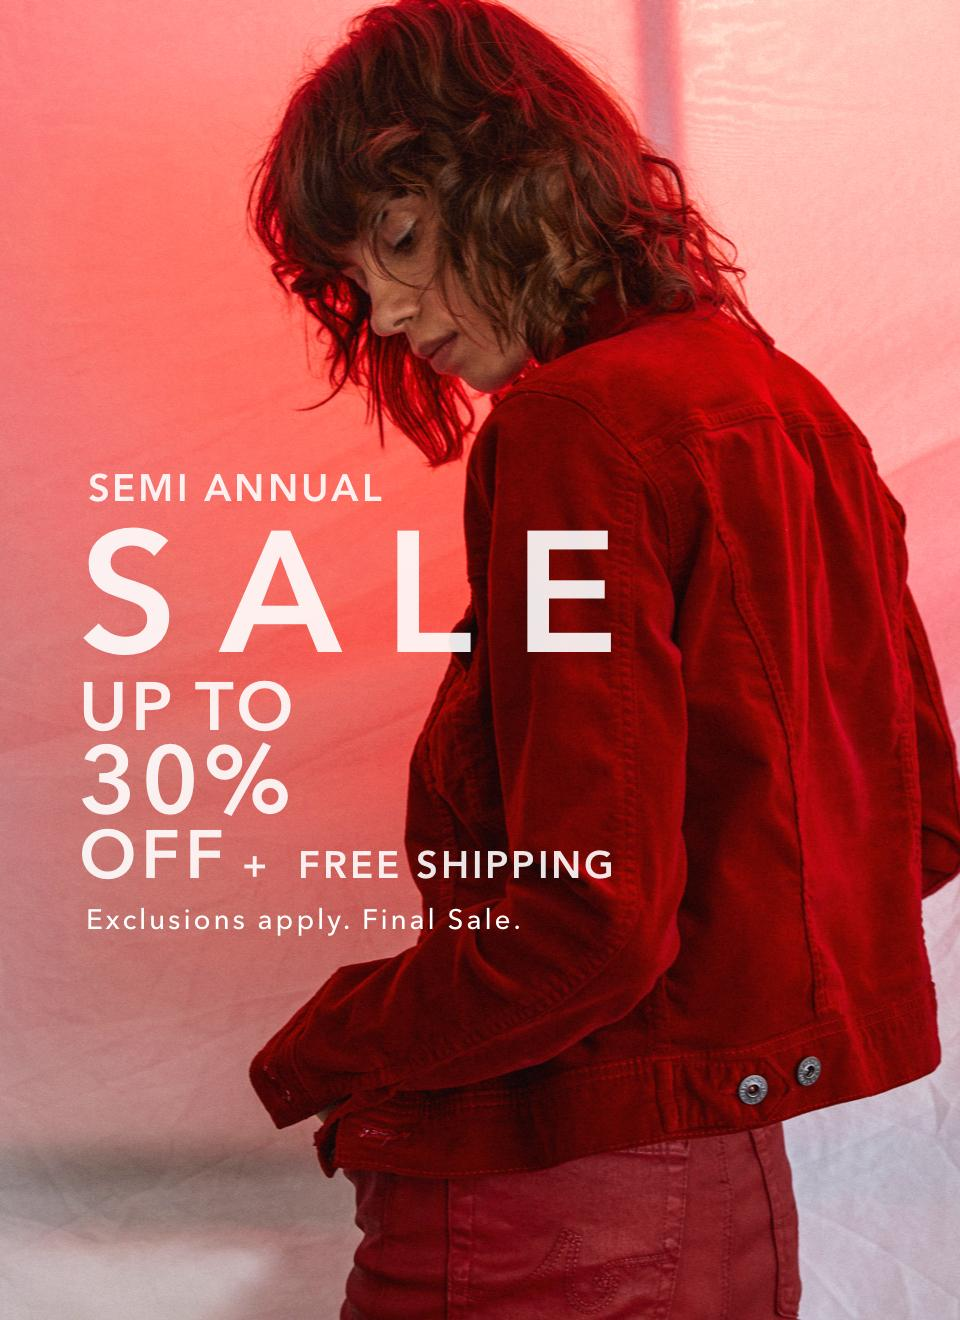 Shop Up to 30% Off During The Semi Annual Sale